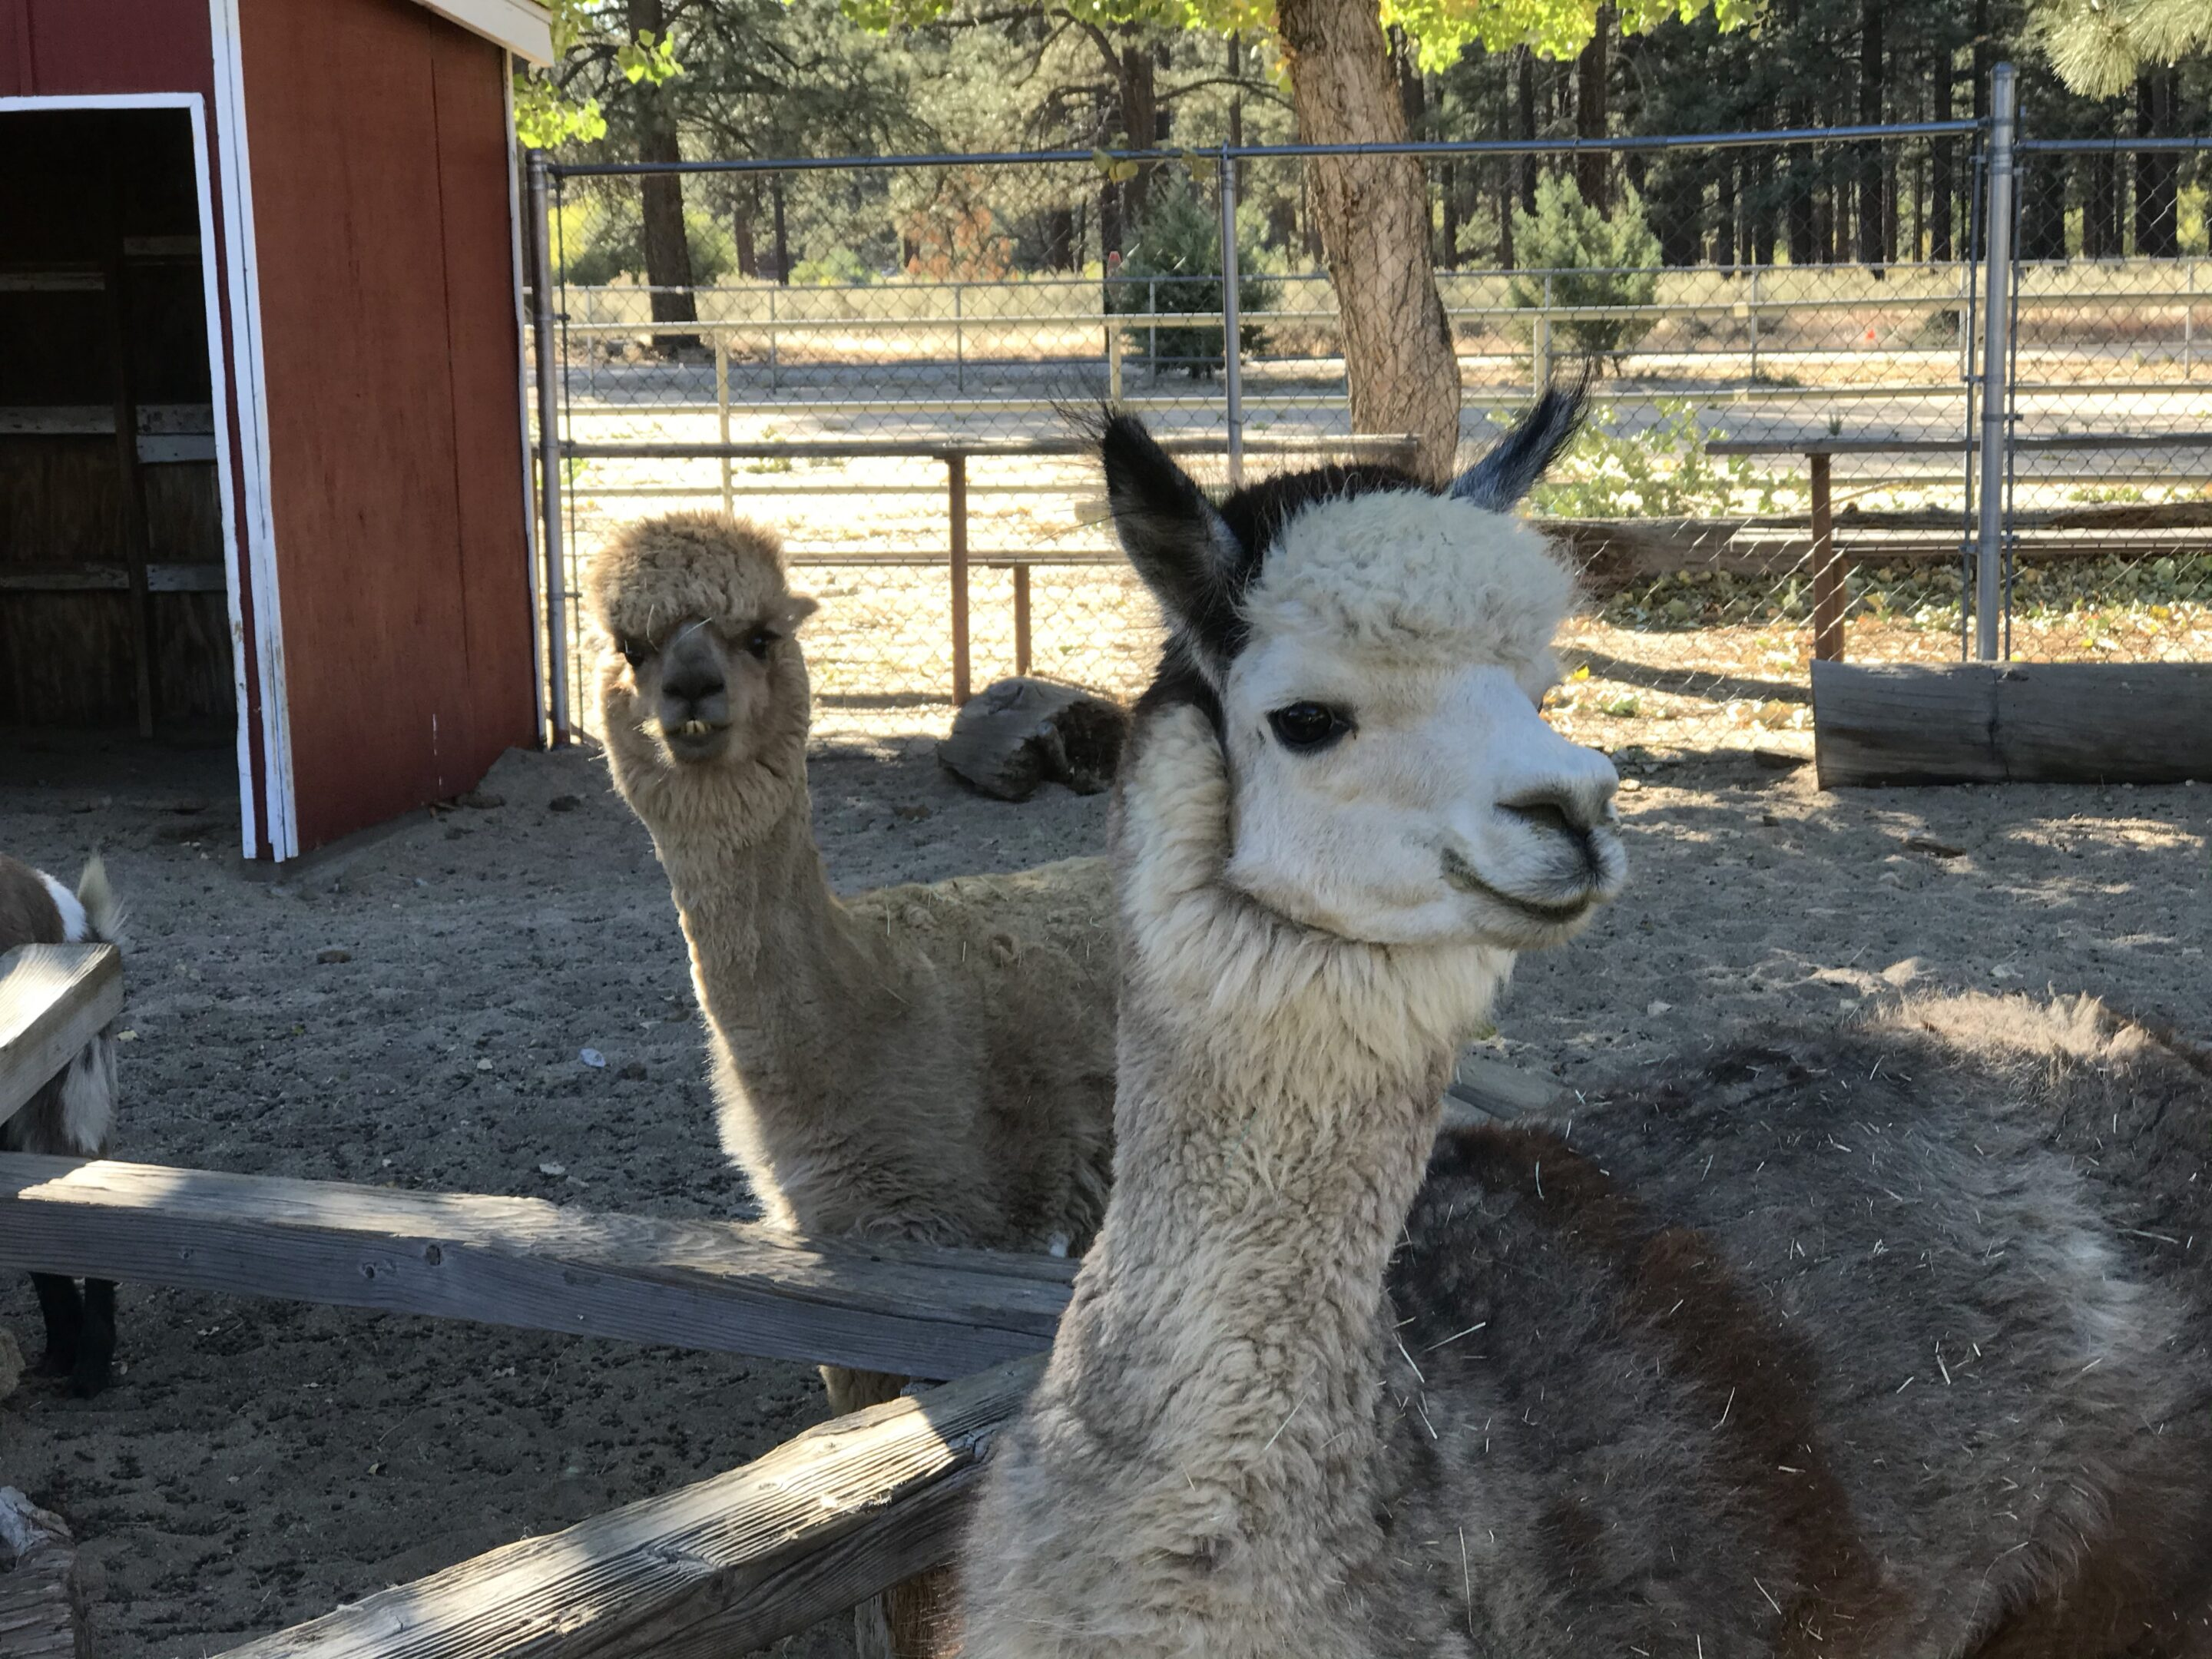 Two alpacas look at the camera in an enclosure.